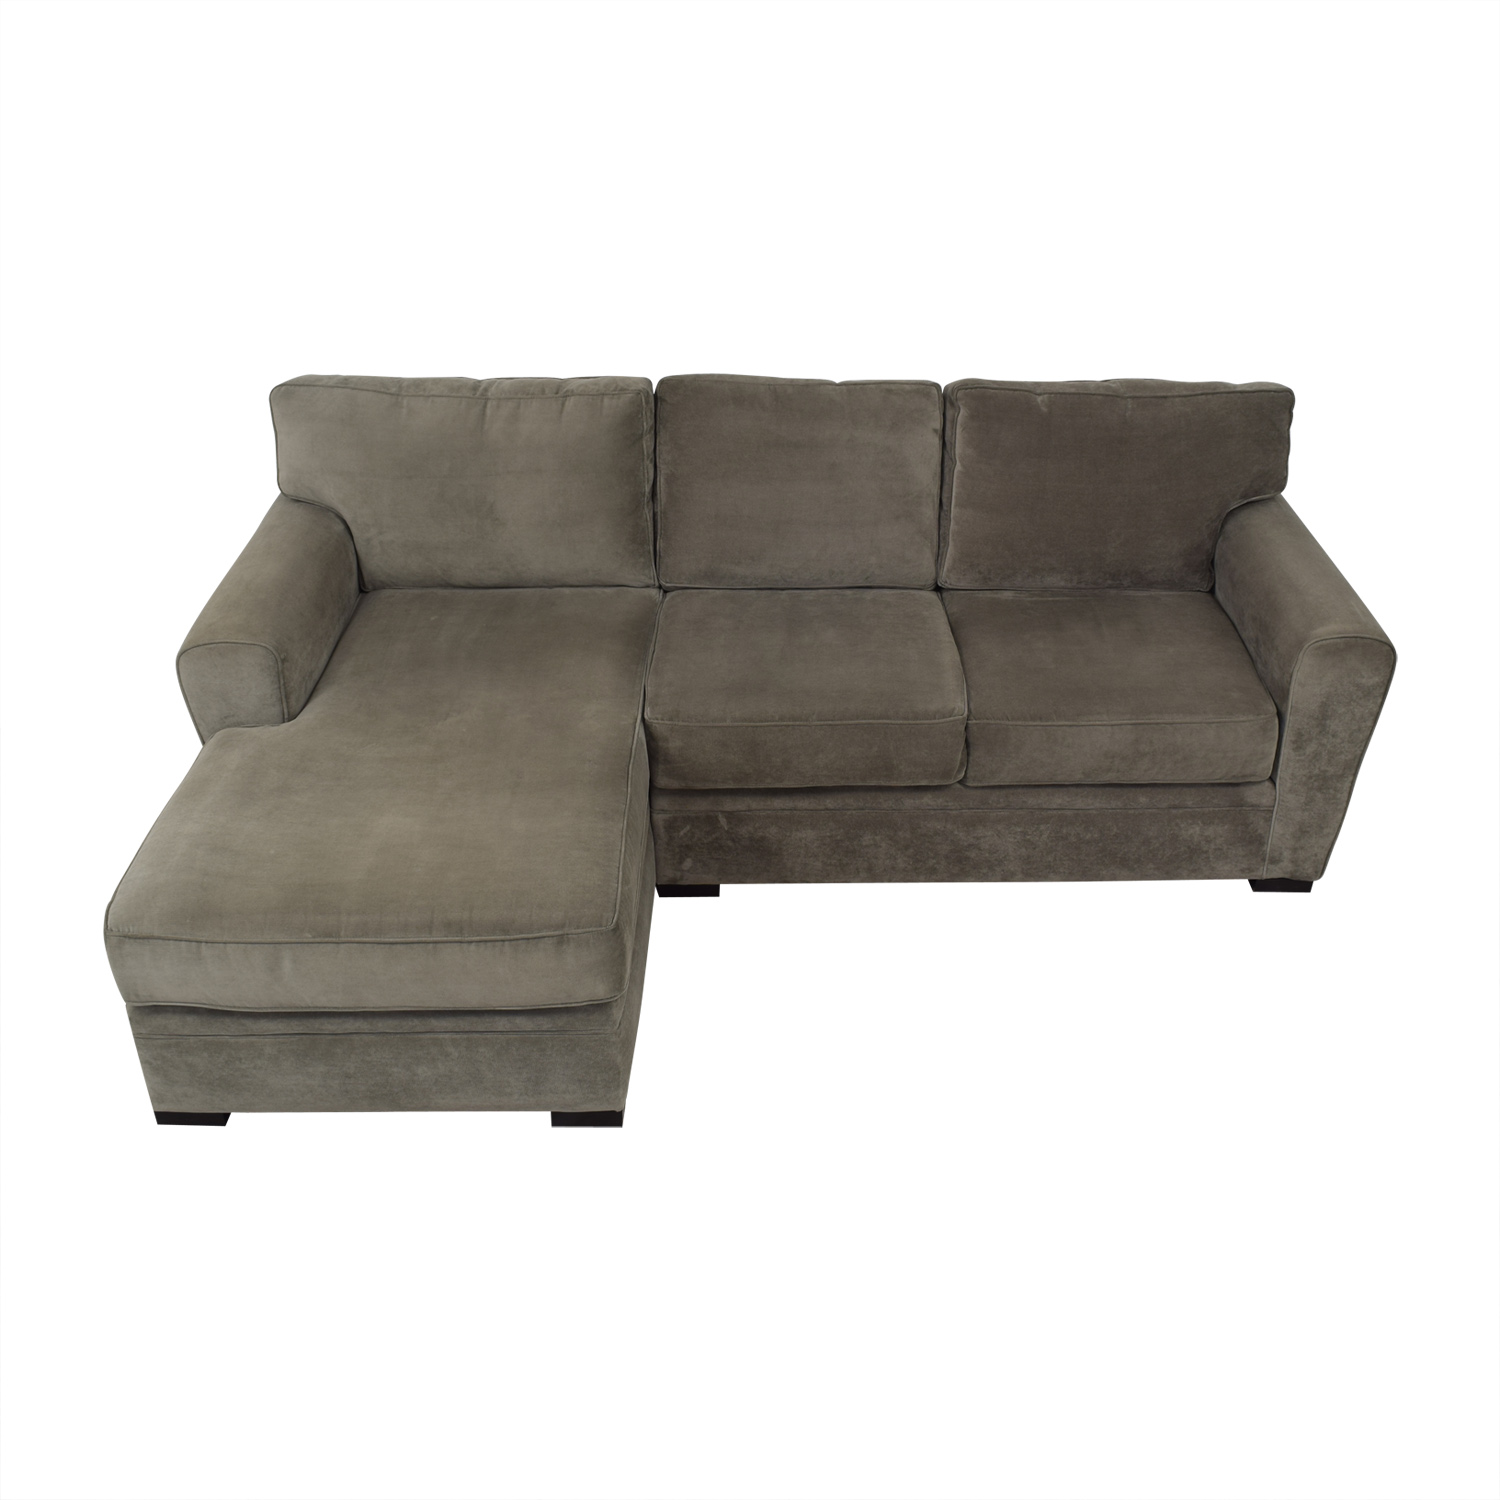 Jonathan Louis Jonathan Louis Sectional Sofa with Chaise Sectionals